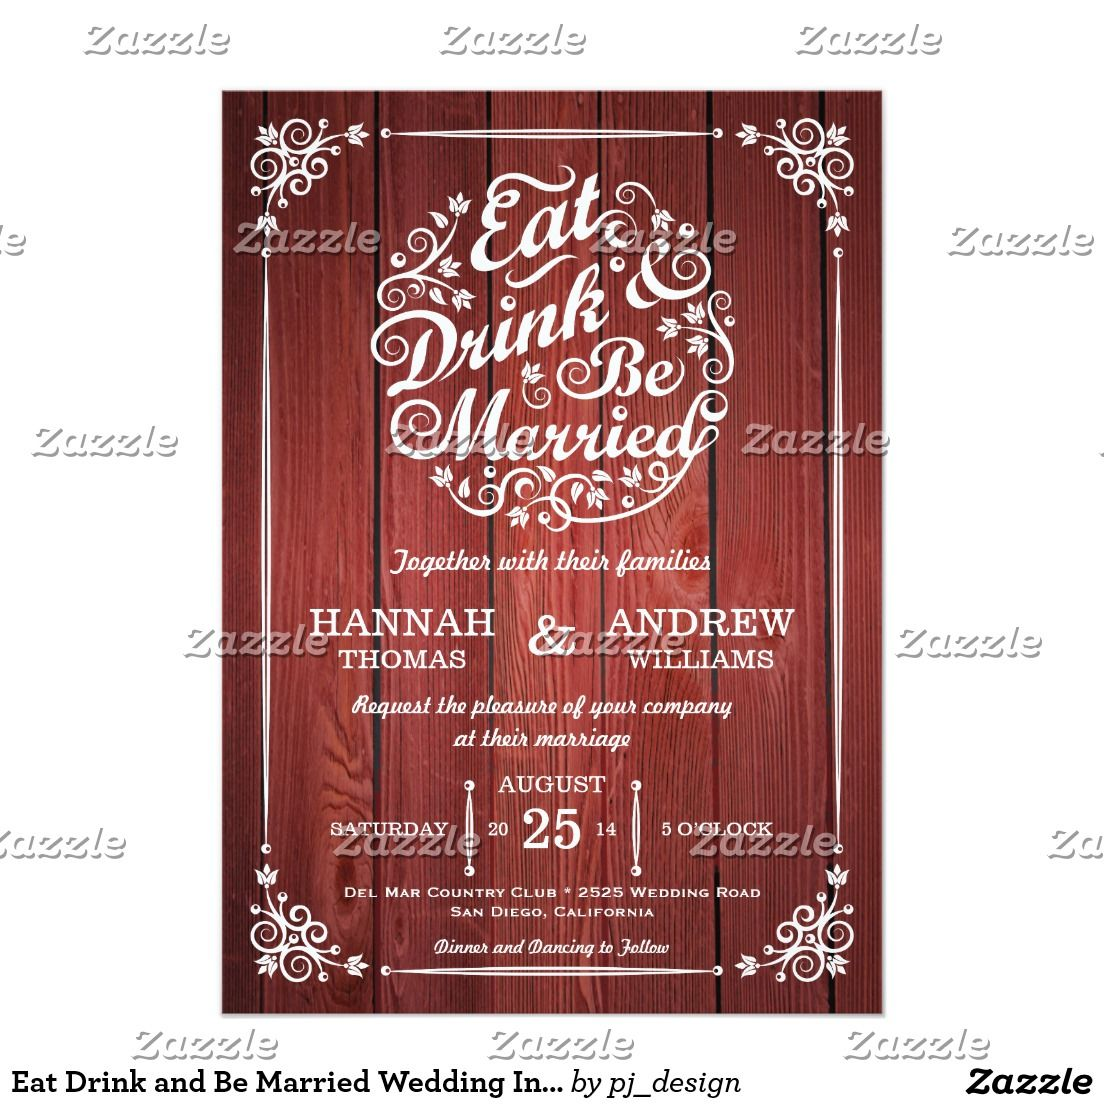 Eat Drink and Be Married Wedding Invitation | Wedding